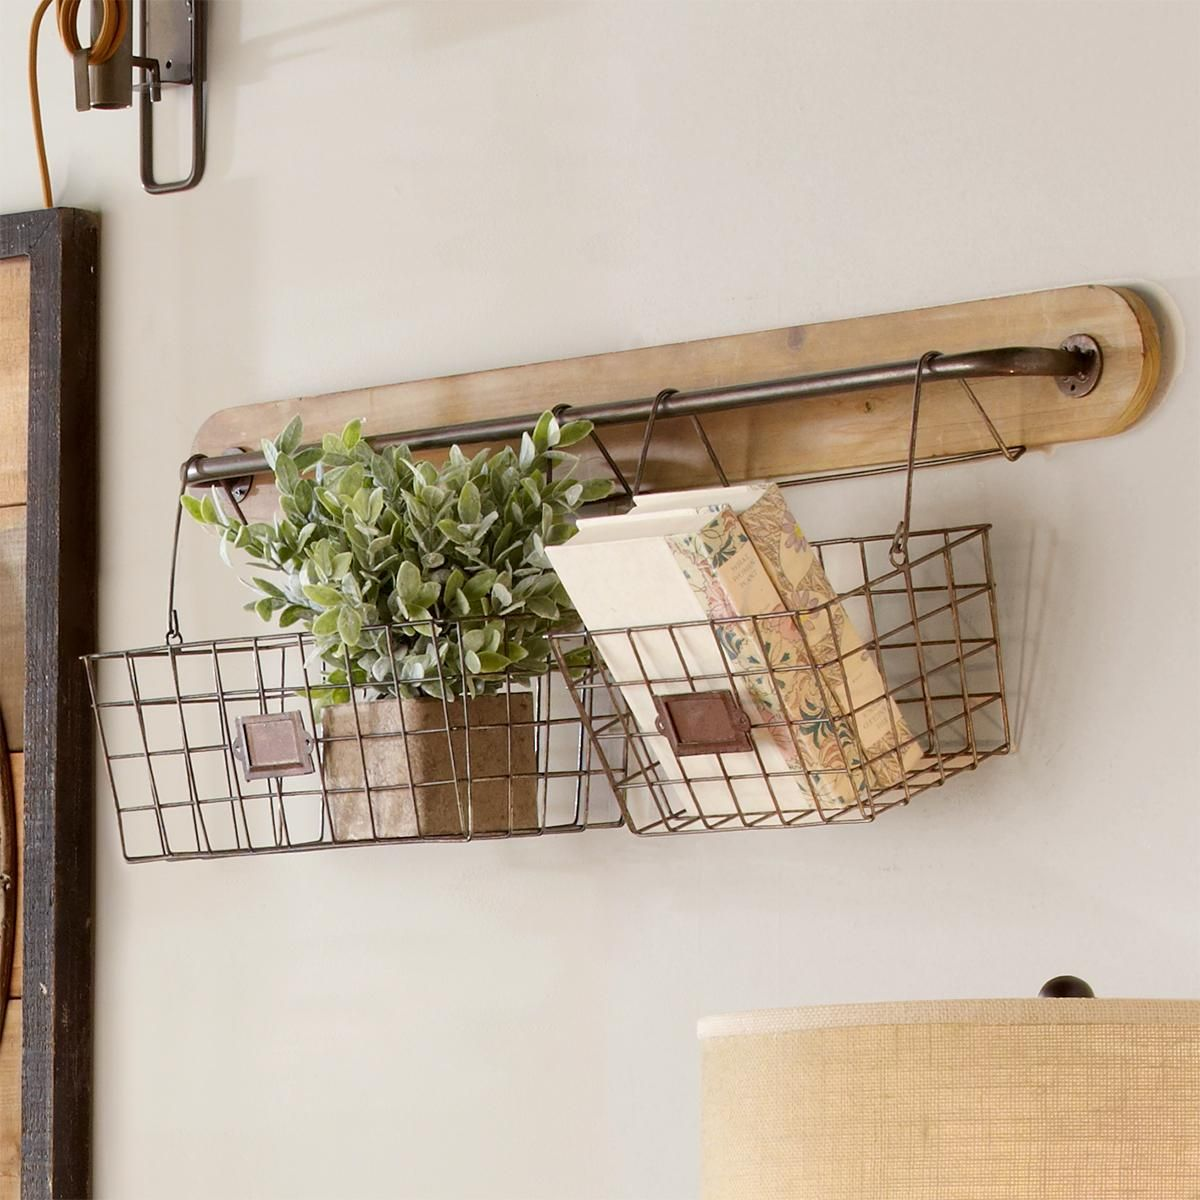 Farmhouse industrial hanging baskets wire baskets room